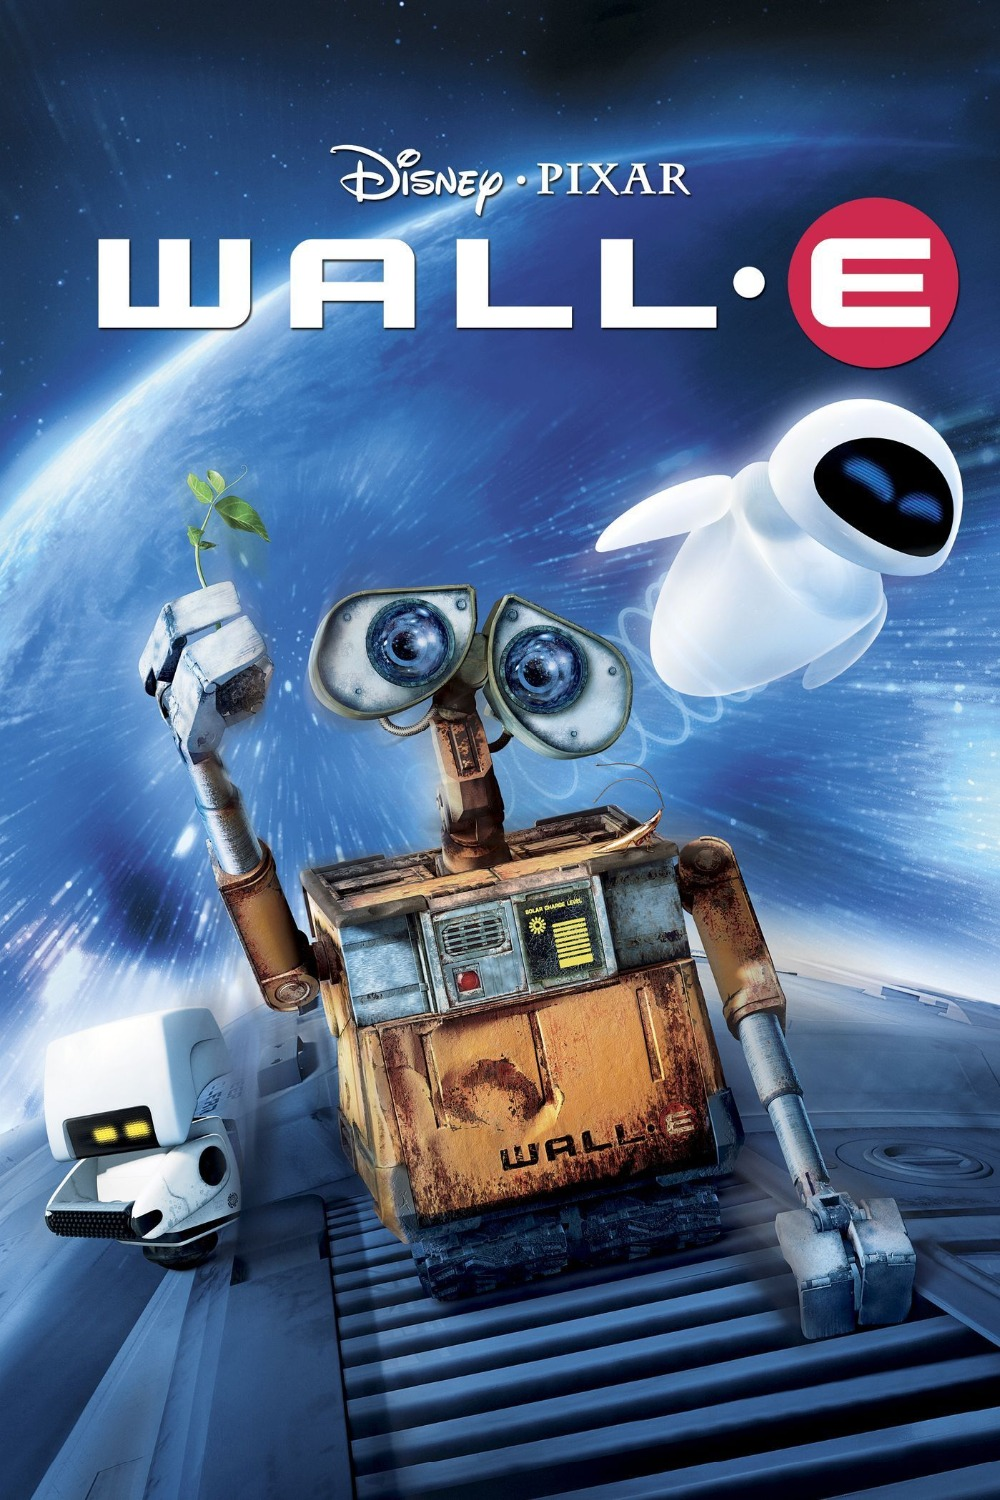 LEGO CUSTOM WALL-E LIMITED ITEM